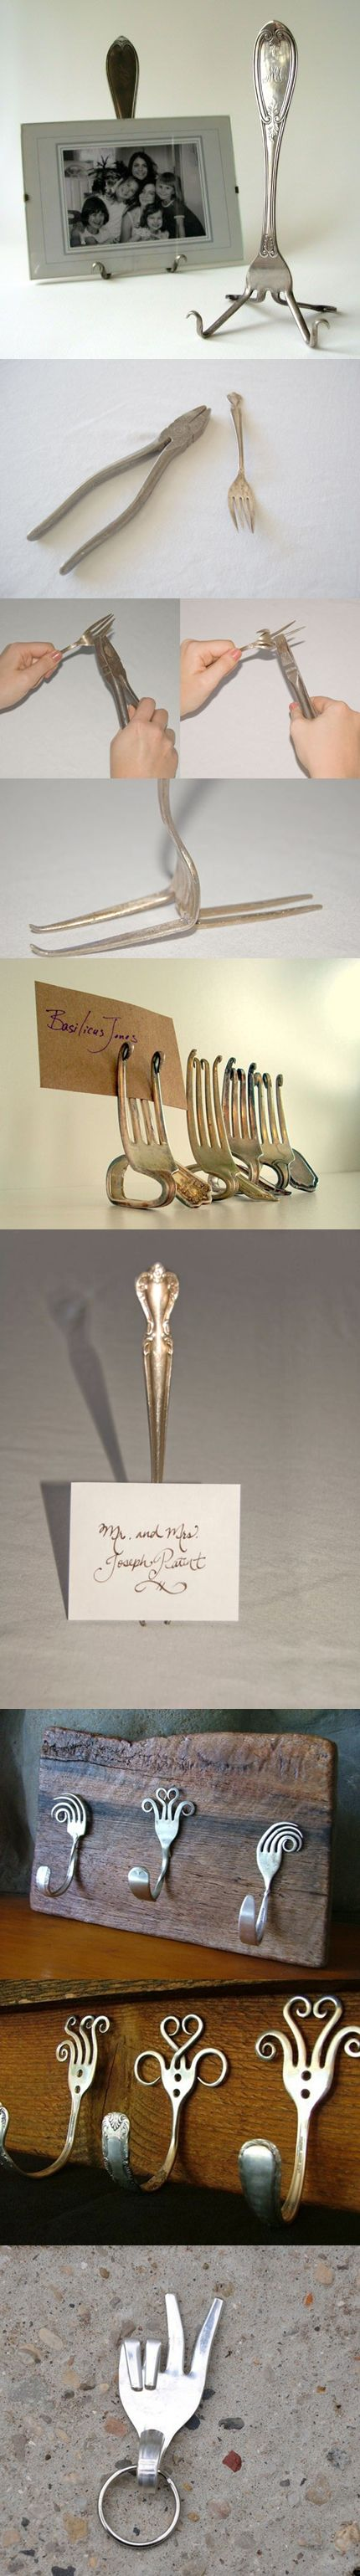 My DIY Projects: You could do so much with forks... fork art